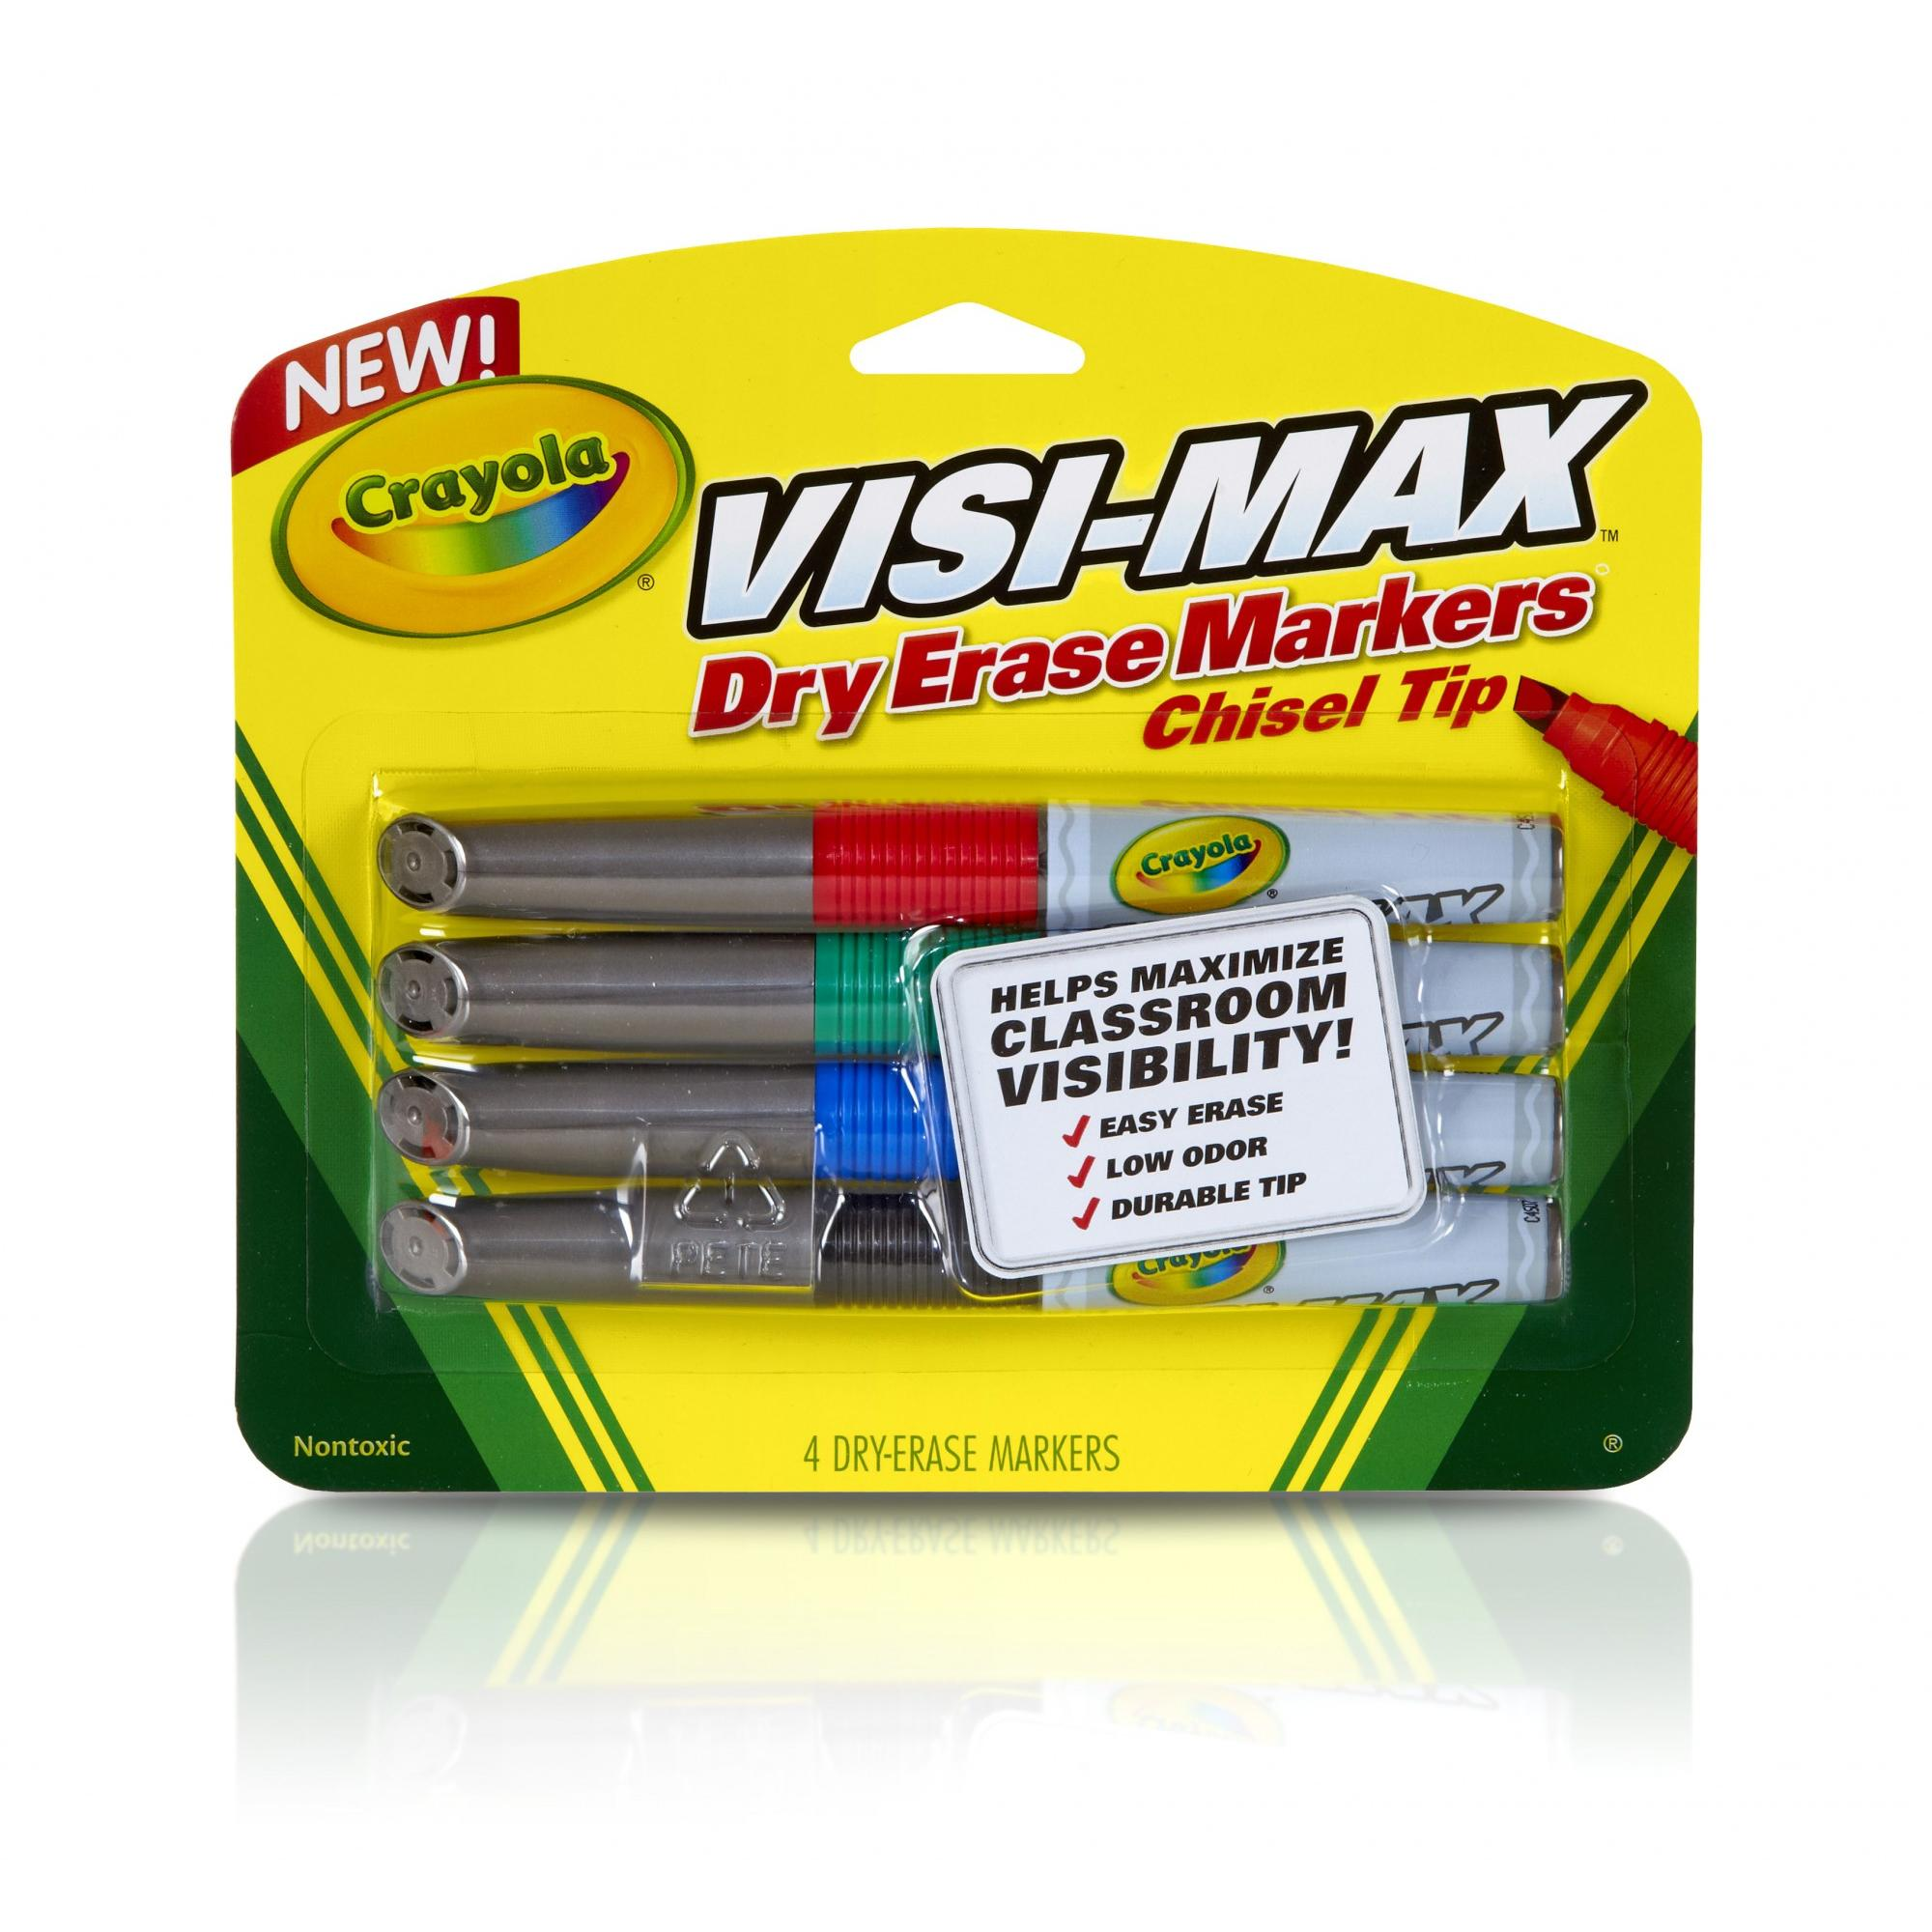 Crayola Visi-Max Dry-Erase Broad Line Markers, 4-Count by Binney And Smith Inc